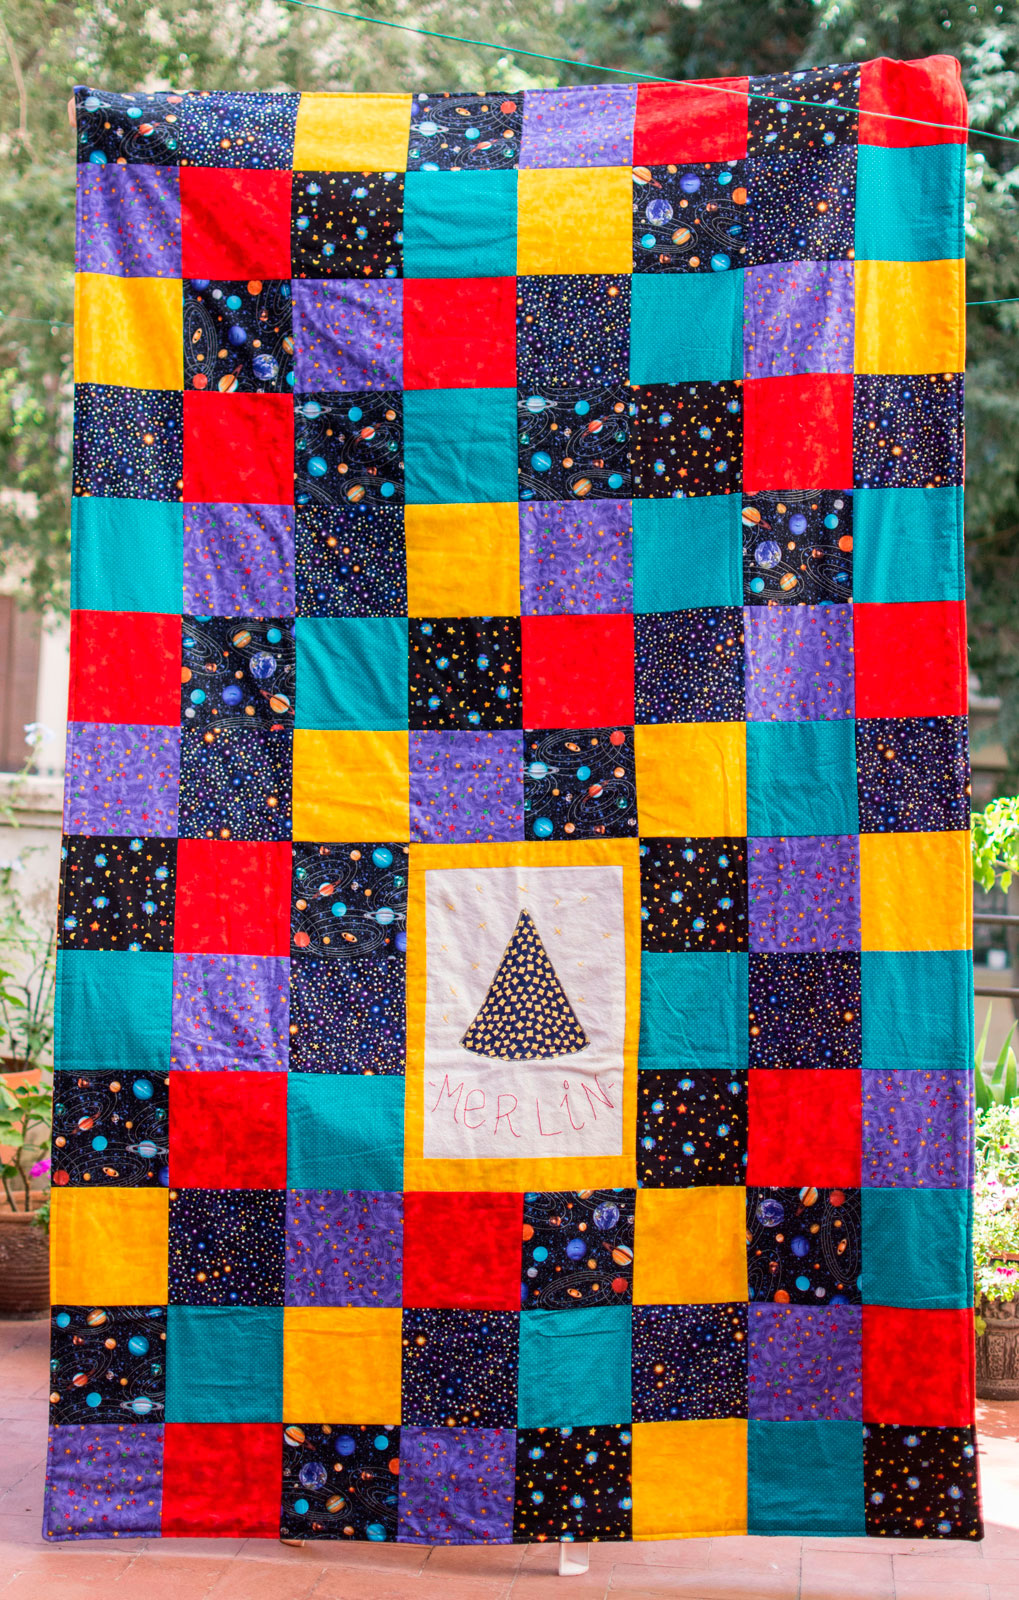 Patchwork-pag-inici-web